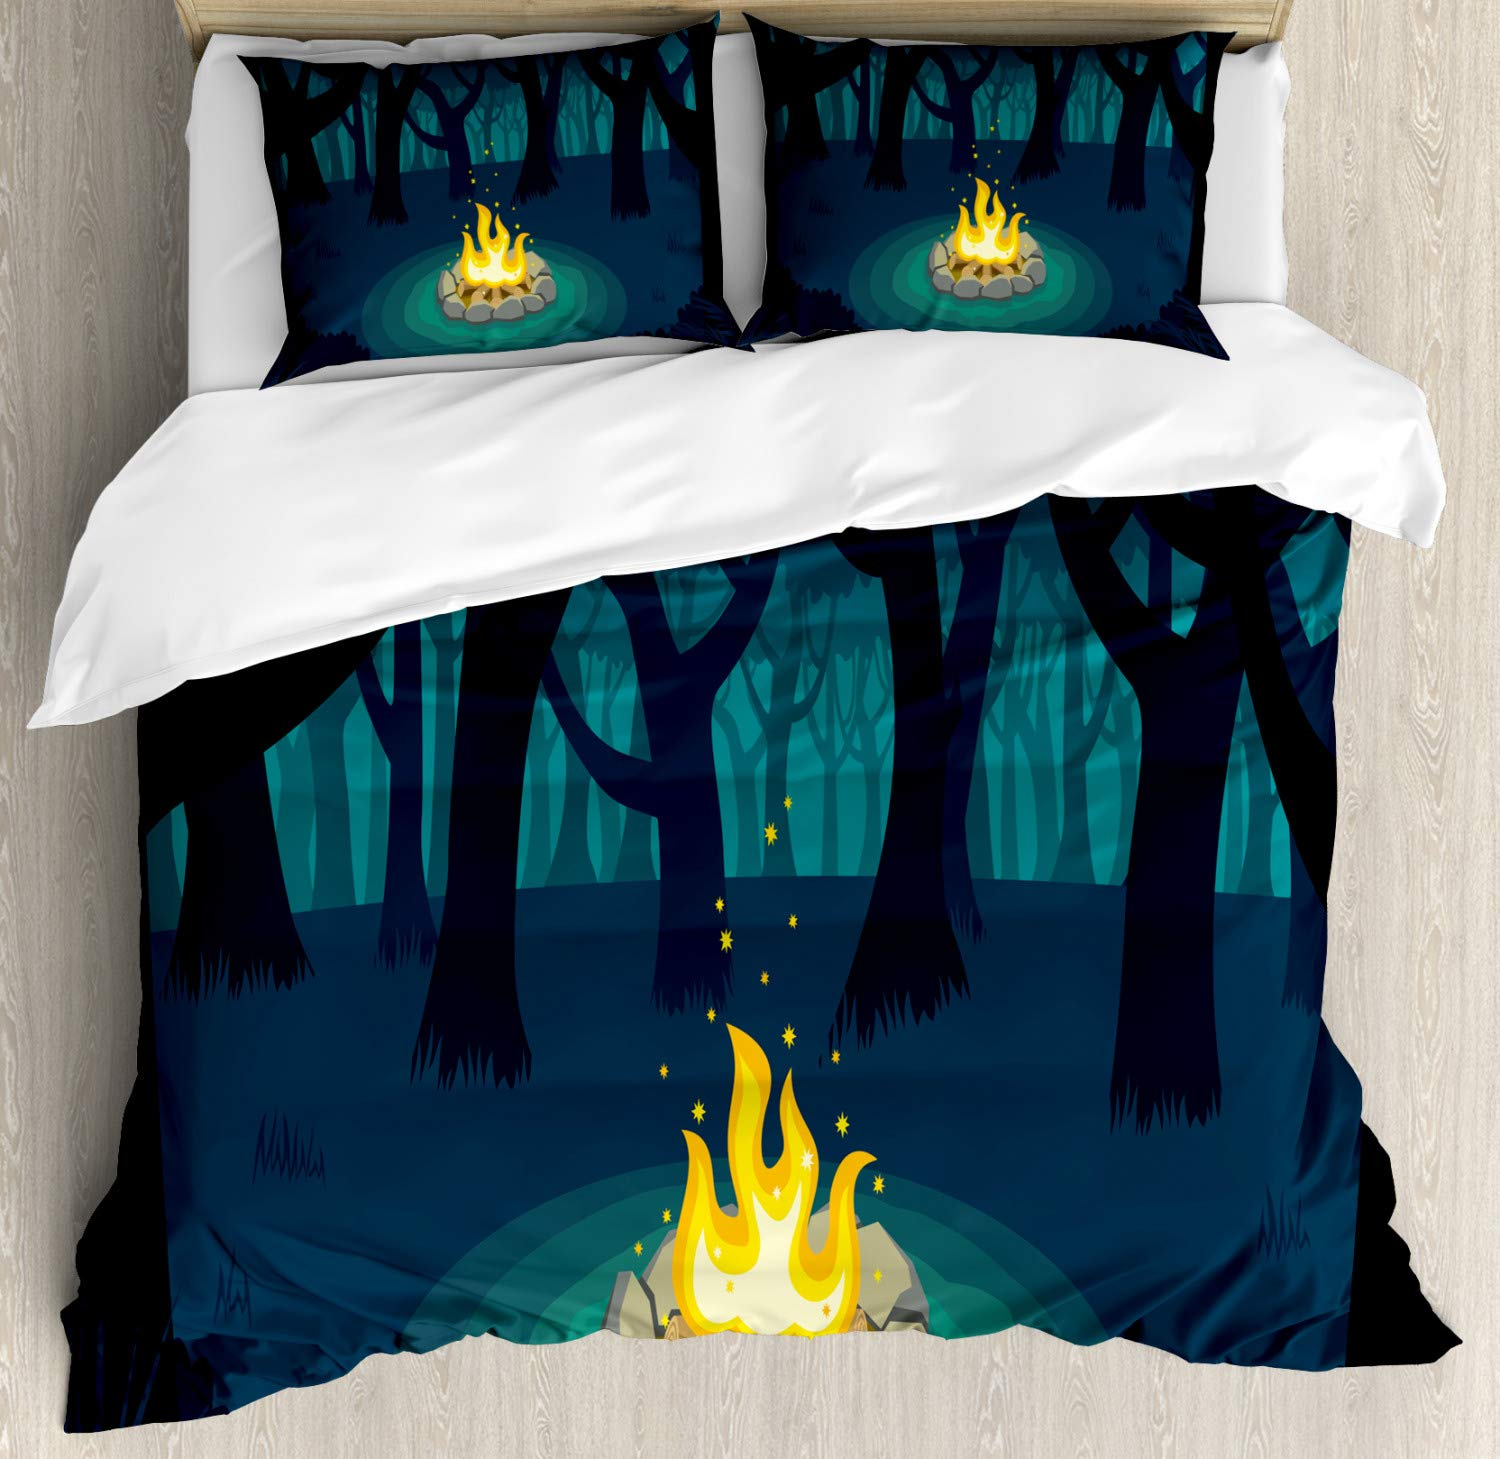 Ambesonne Happy Camper Duvet Cover Set, Cartoon Illustration of Lonely Campfire in Woods at Night, Decorative 3 Piece Bedding Set with 2 Pillow Shams, Queen Size, Blue Teal